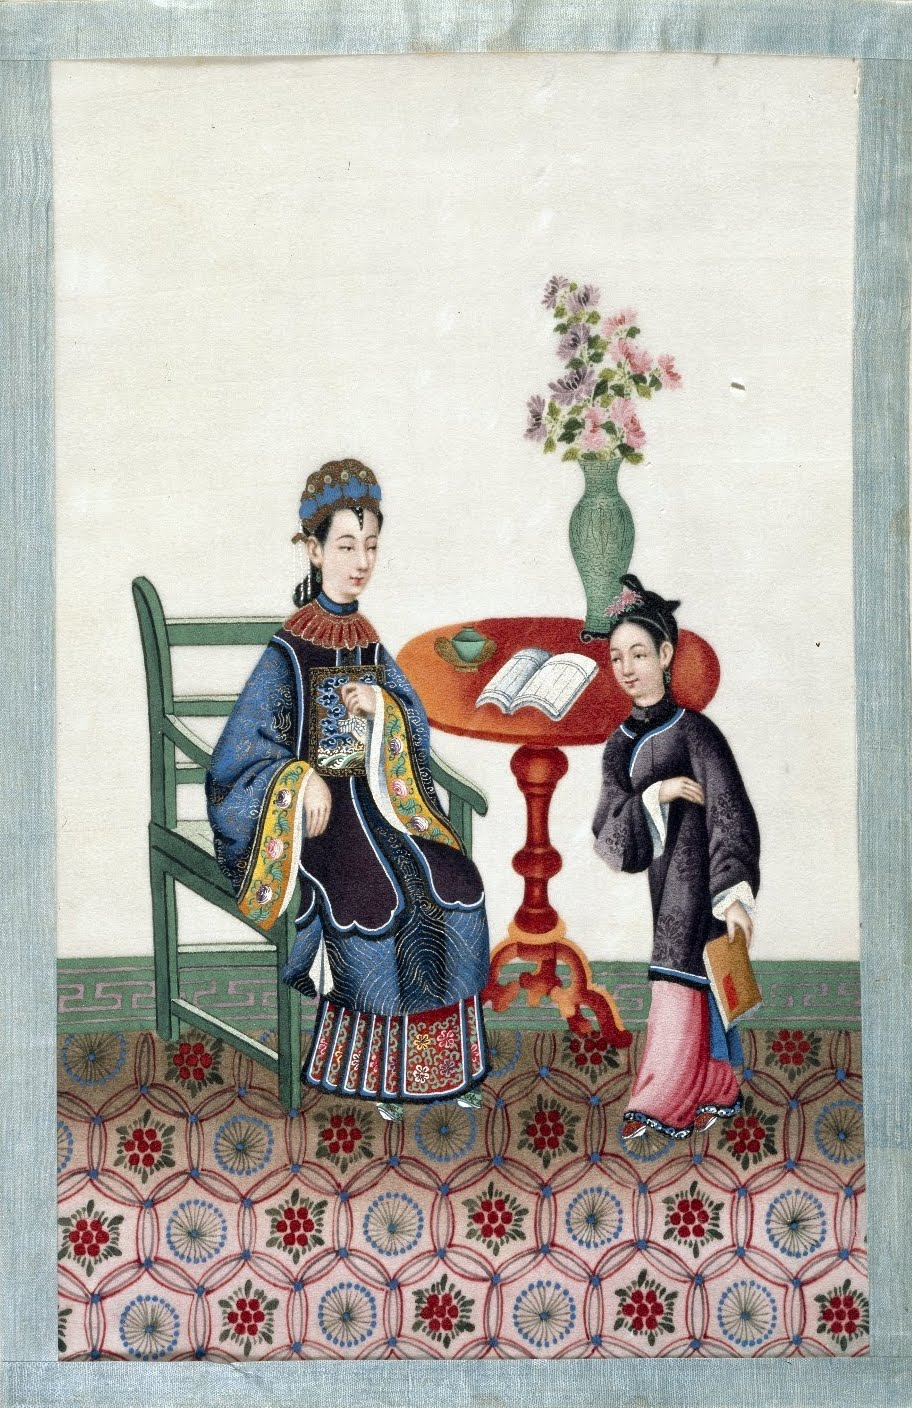 royal court scene in China